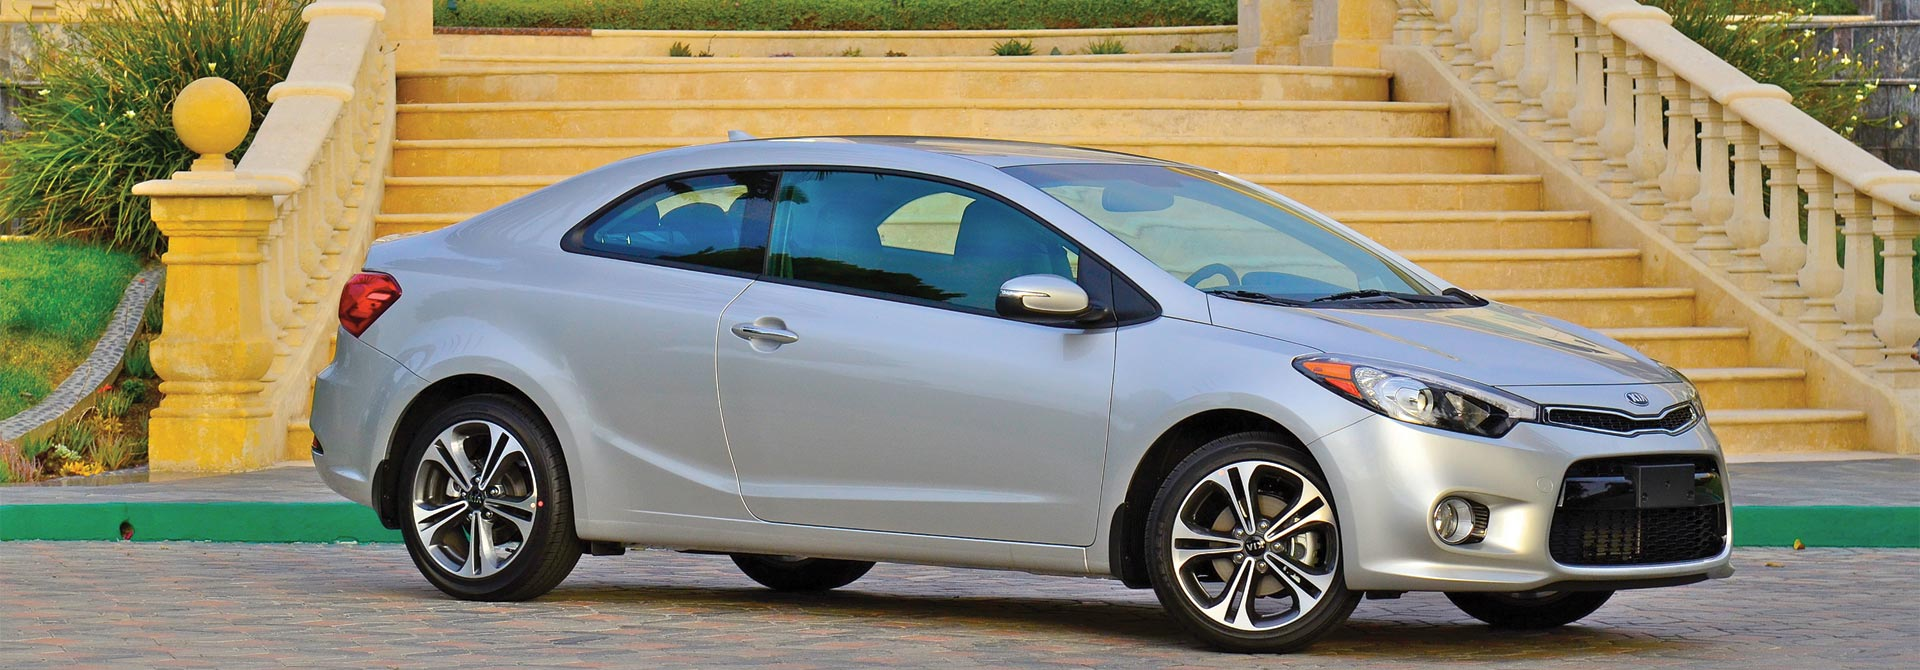 2017 kia forte koup 2dr cpe man ex for sale in dorval kia dorval. Black Bedroom Furniture Sets. Home Design Ideas